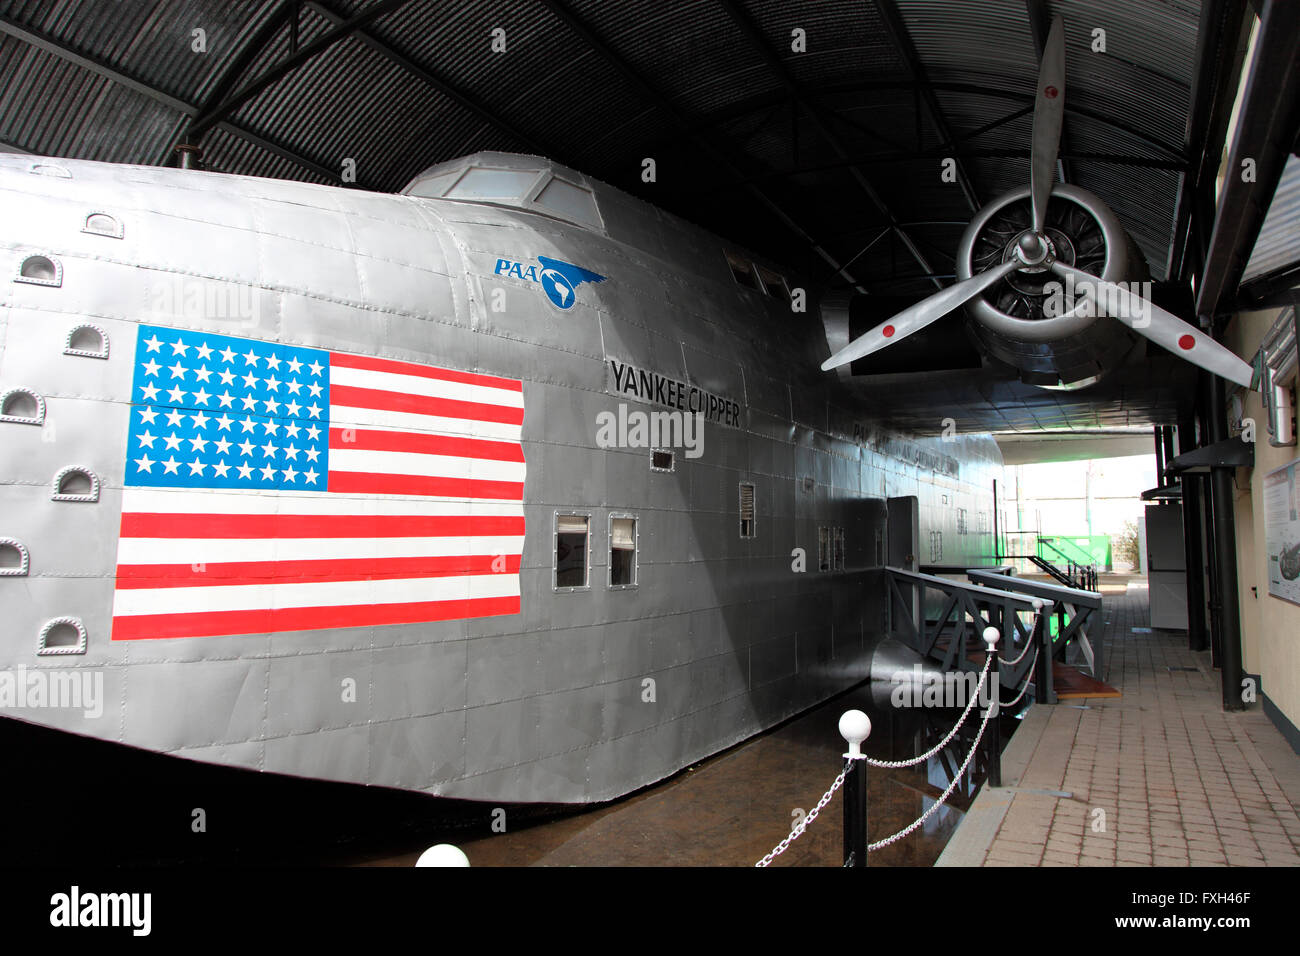 Pan Am Yankee Clipper exhibited at the Foynes Flying Boat Museum, Foynes, Ireland - Stock Image